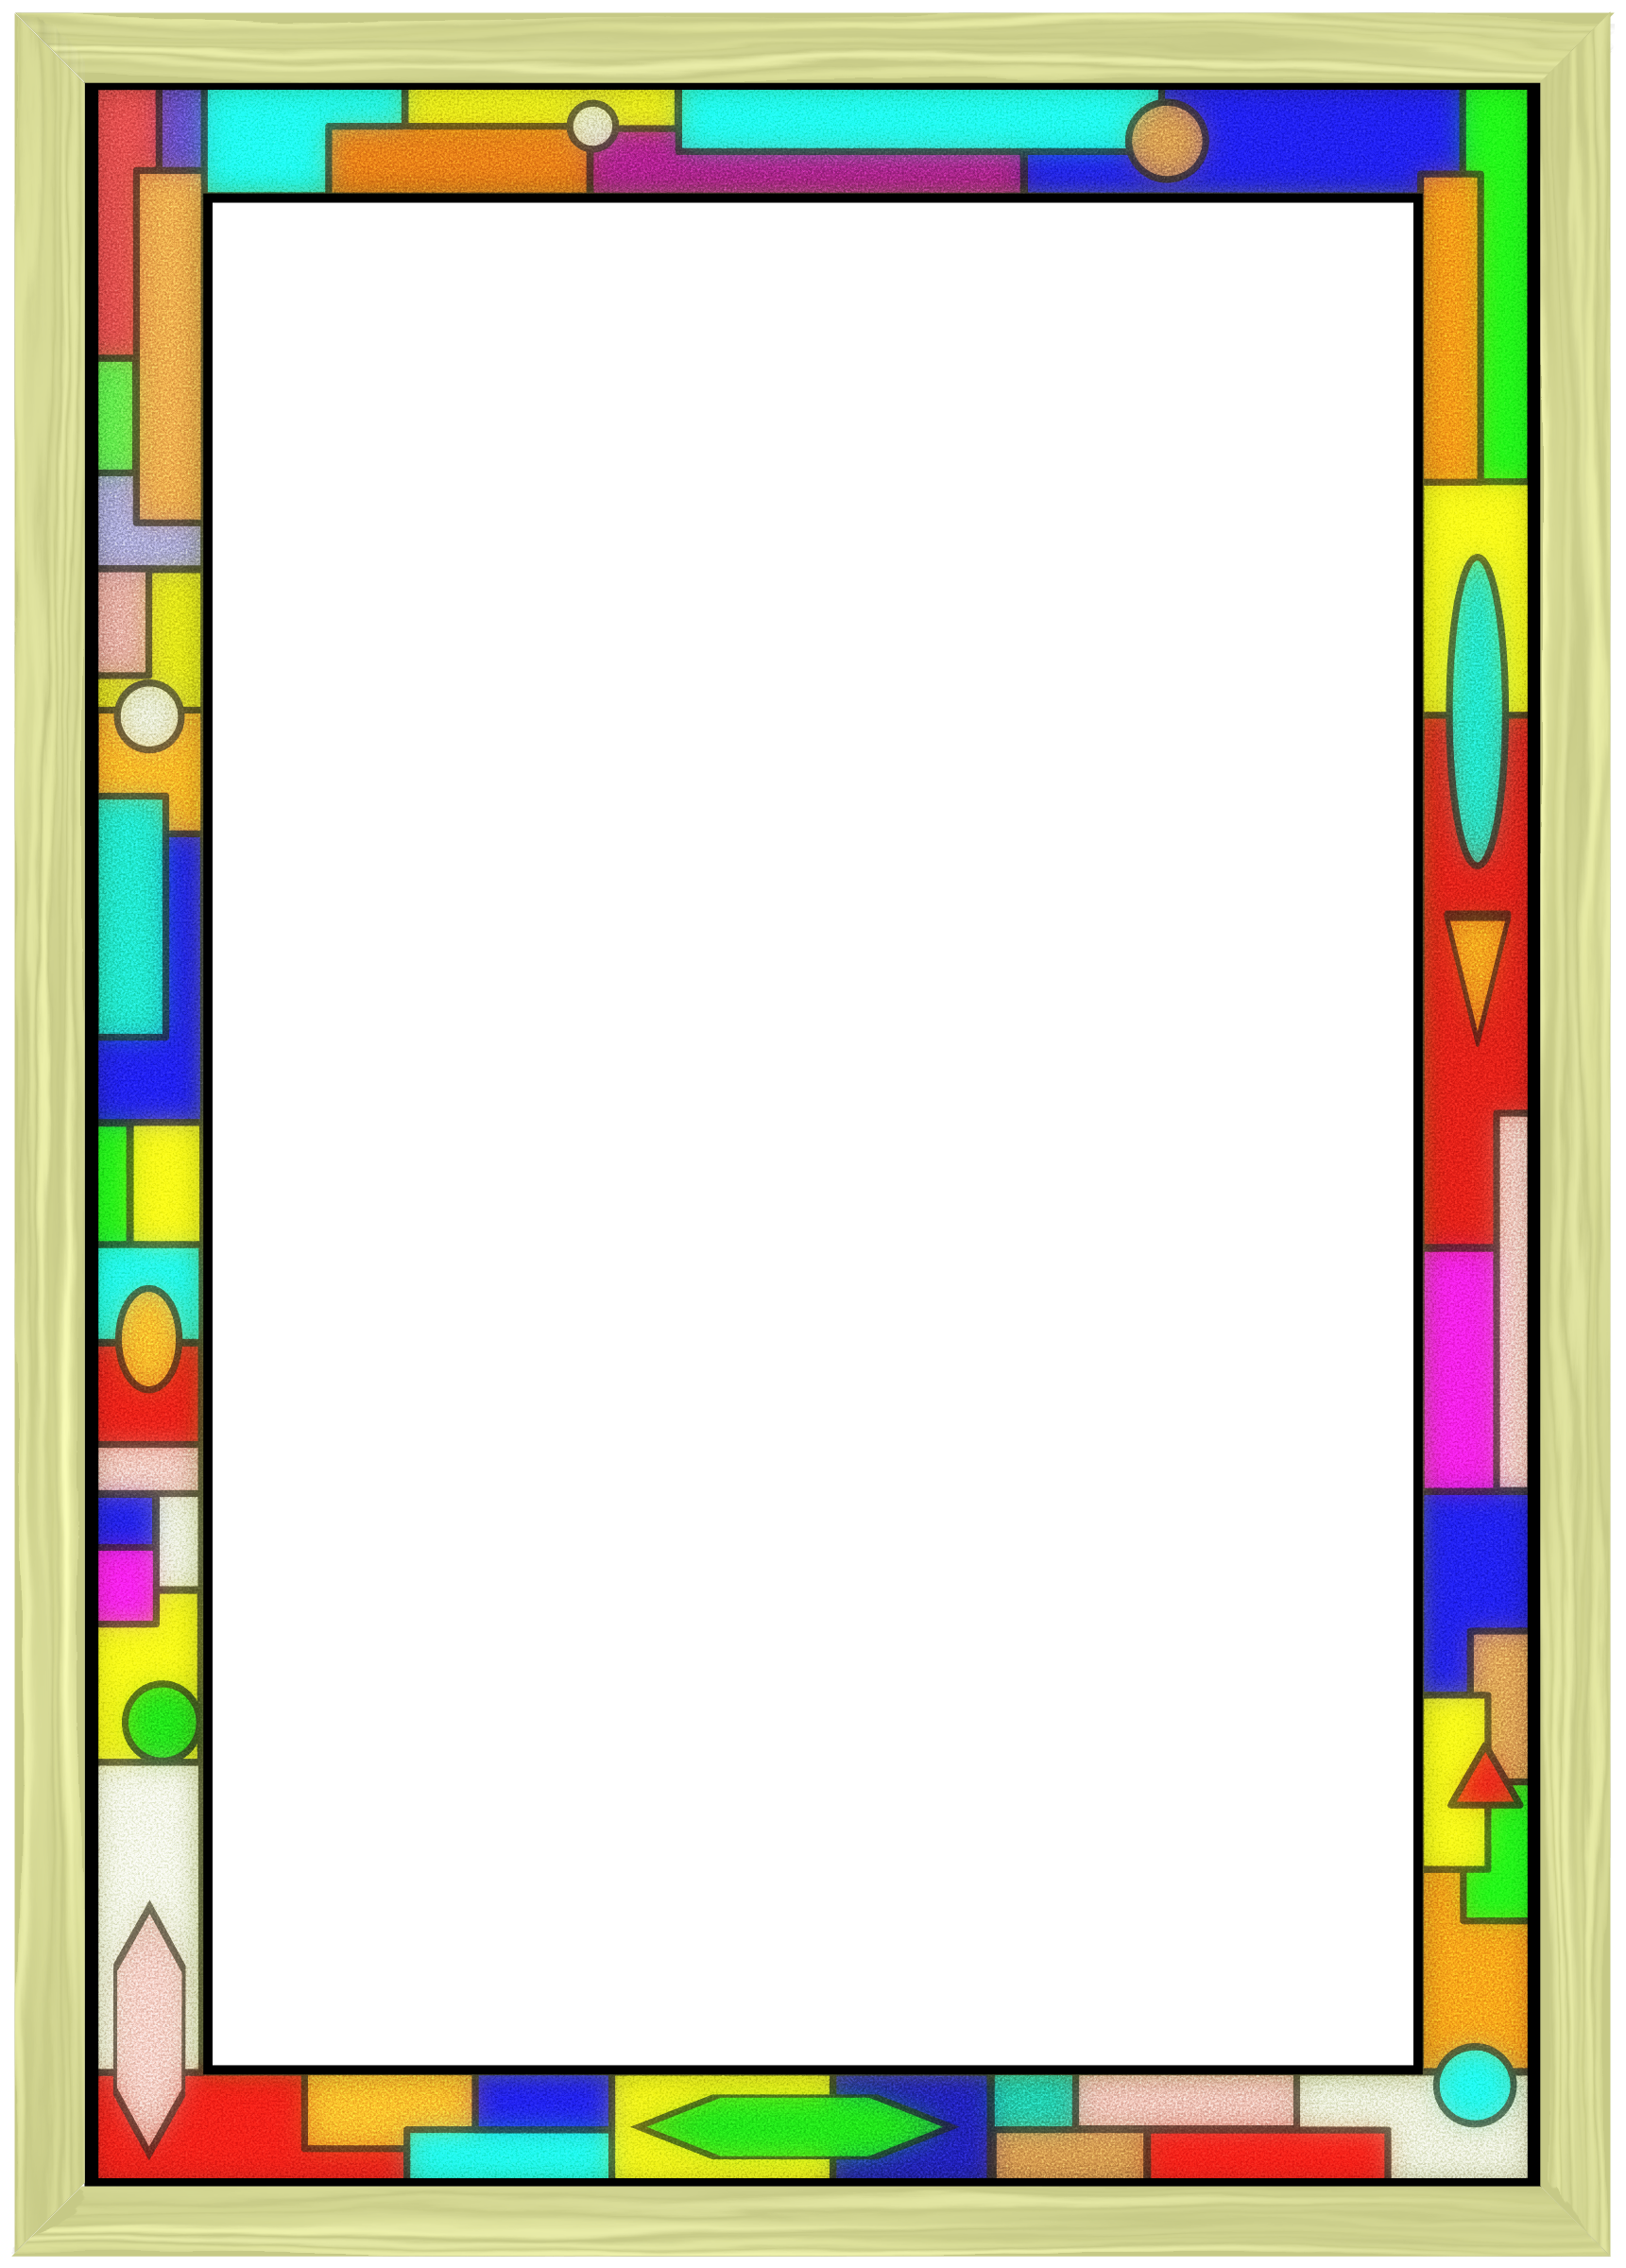 Stained glass star clipart graphic Stained Glass Border 02 by Arvin61r58 | FRAMES...and...BORDERS ... graphic